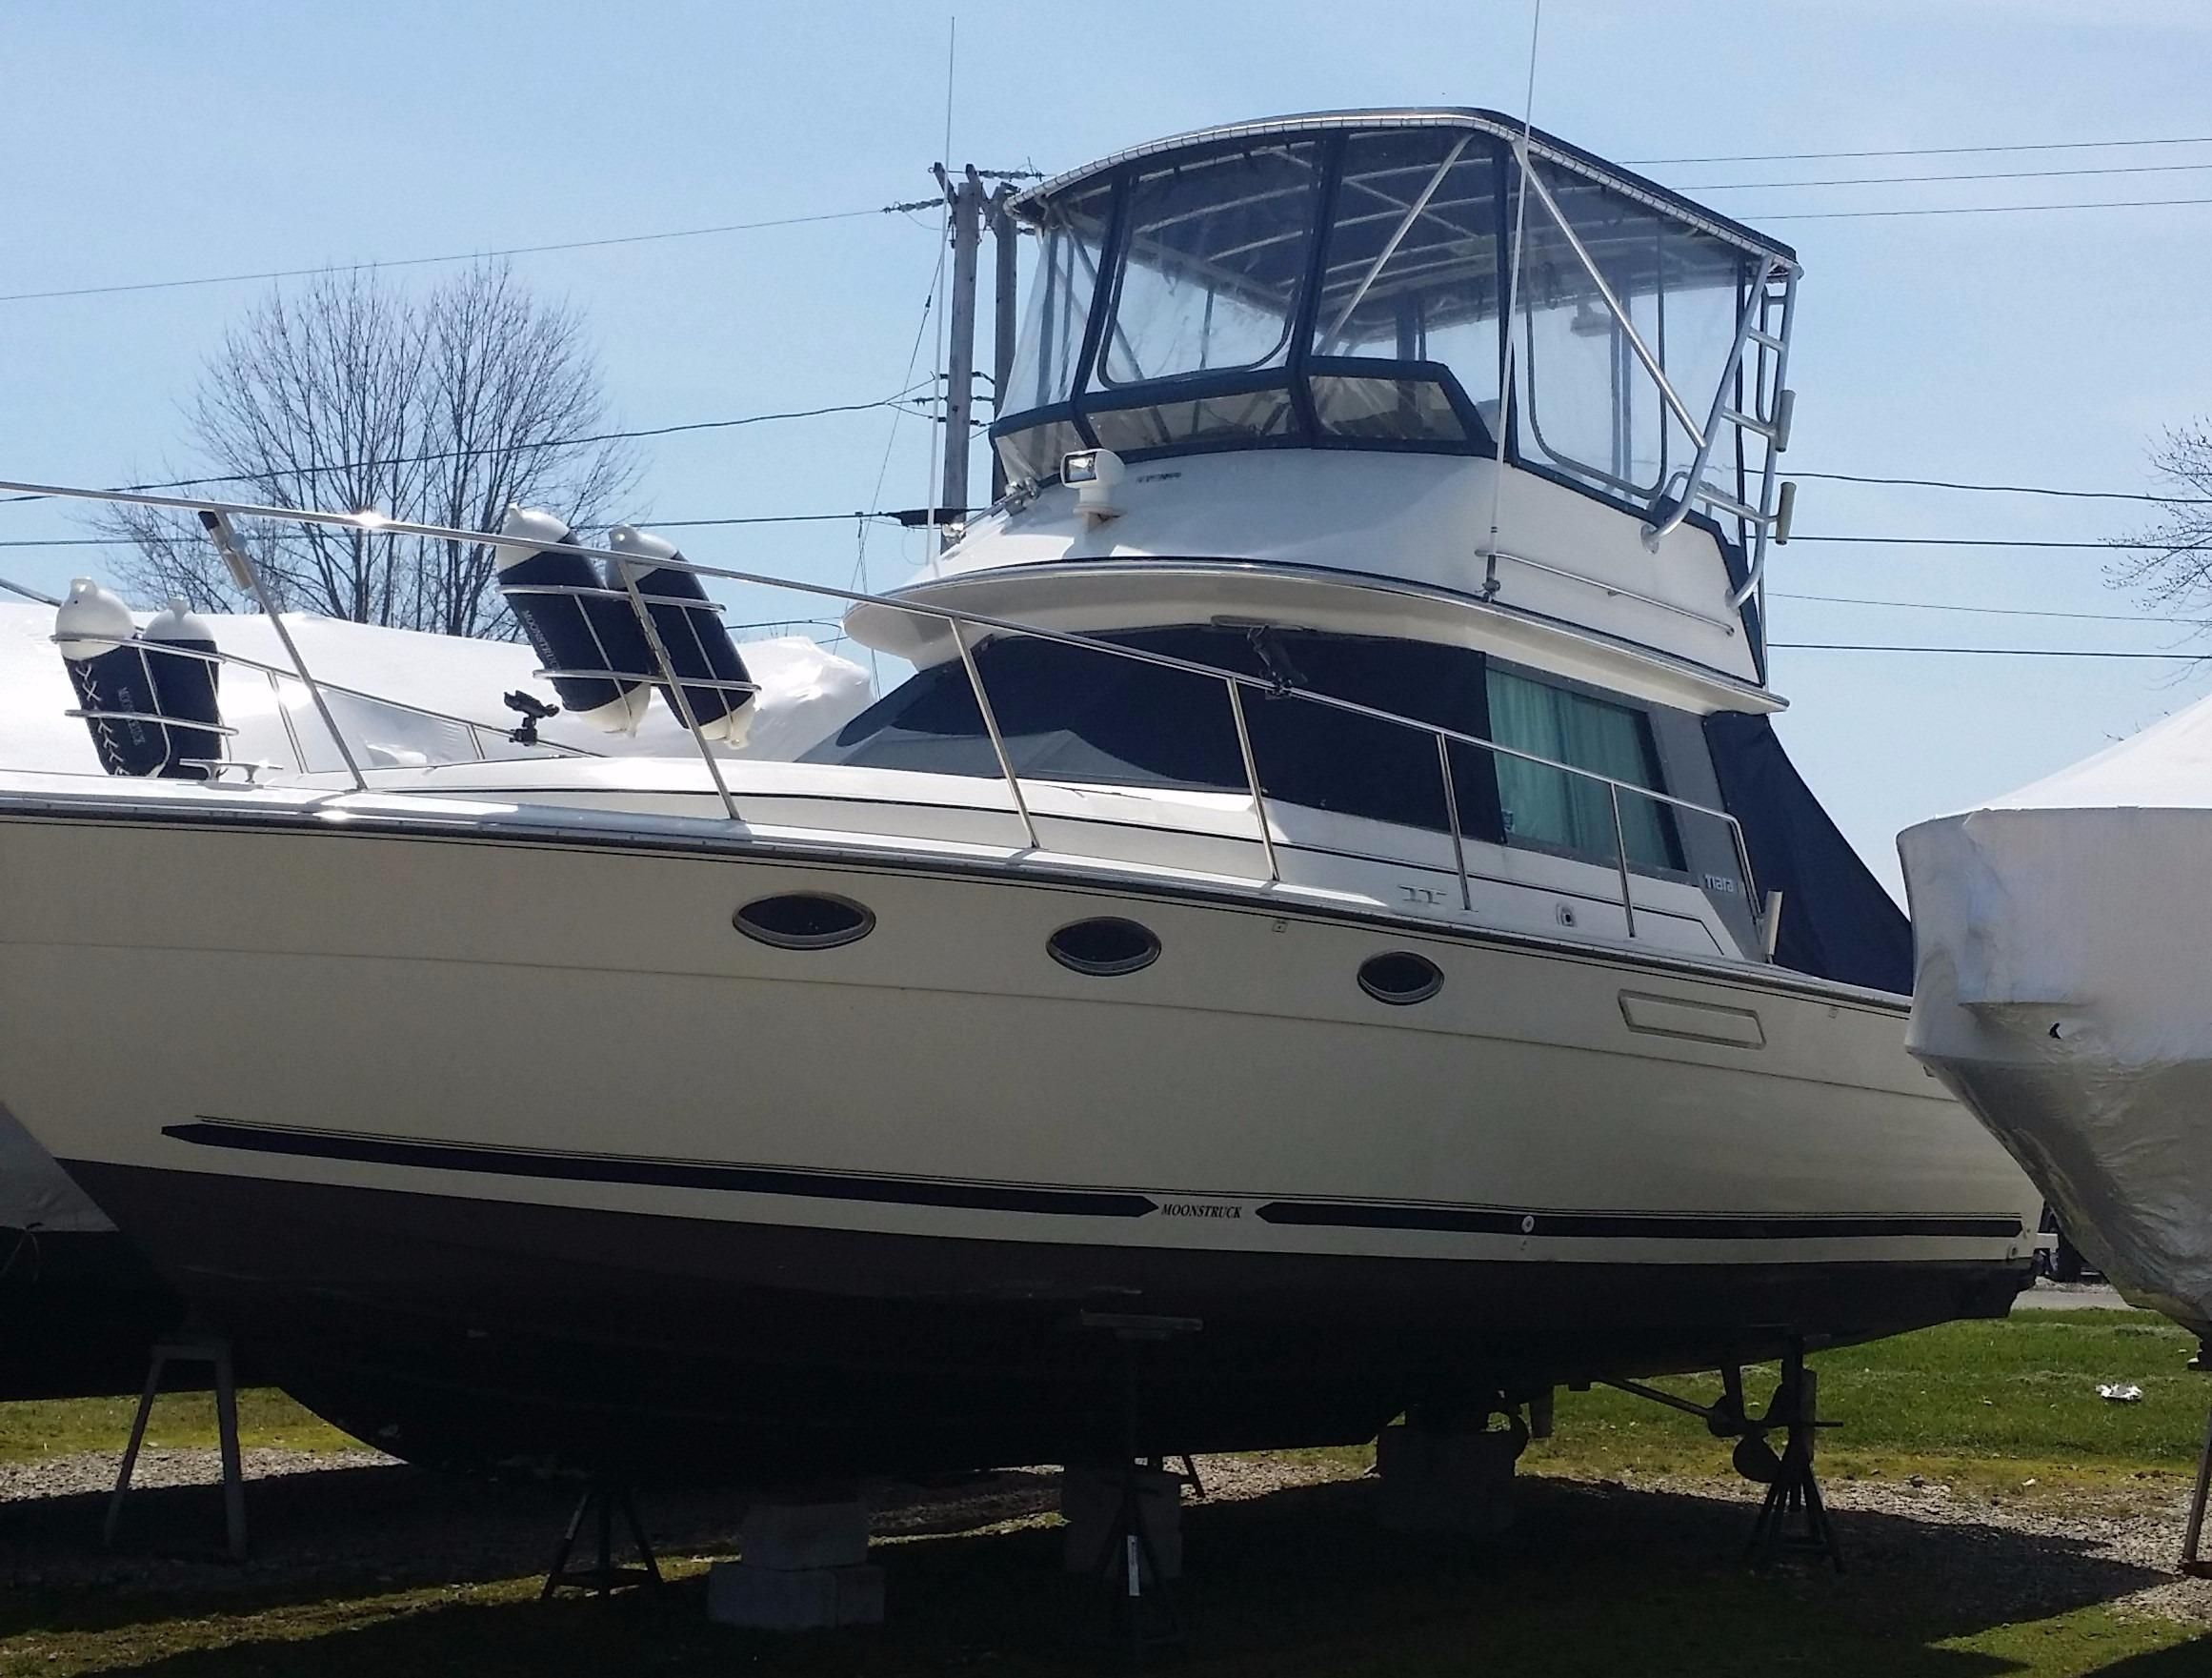 Port Clinton (OH) United States  city photos : 1988 Tiara 3100 Convertible Power Boat For Sale www.yachtworld.com